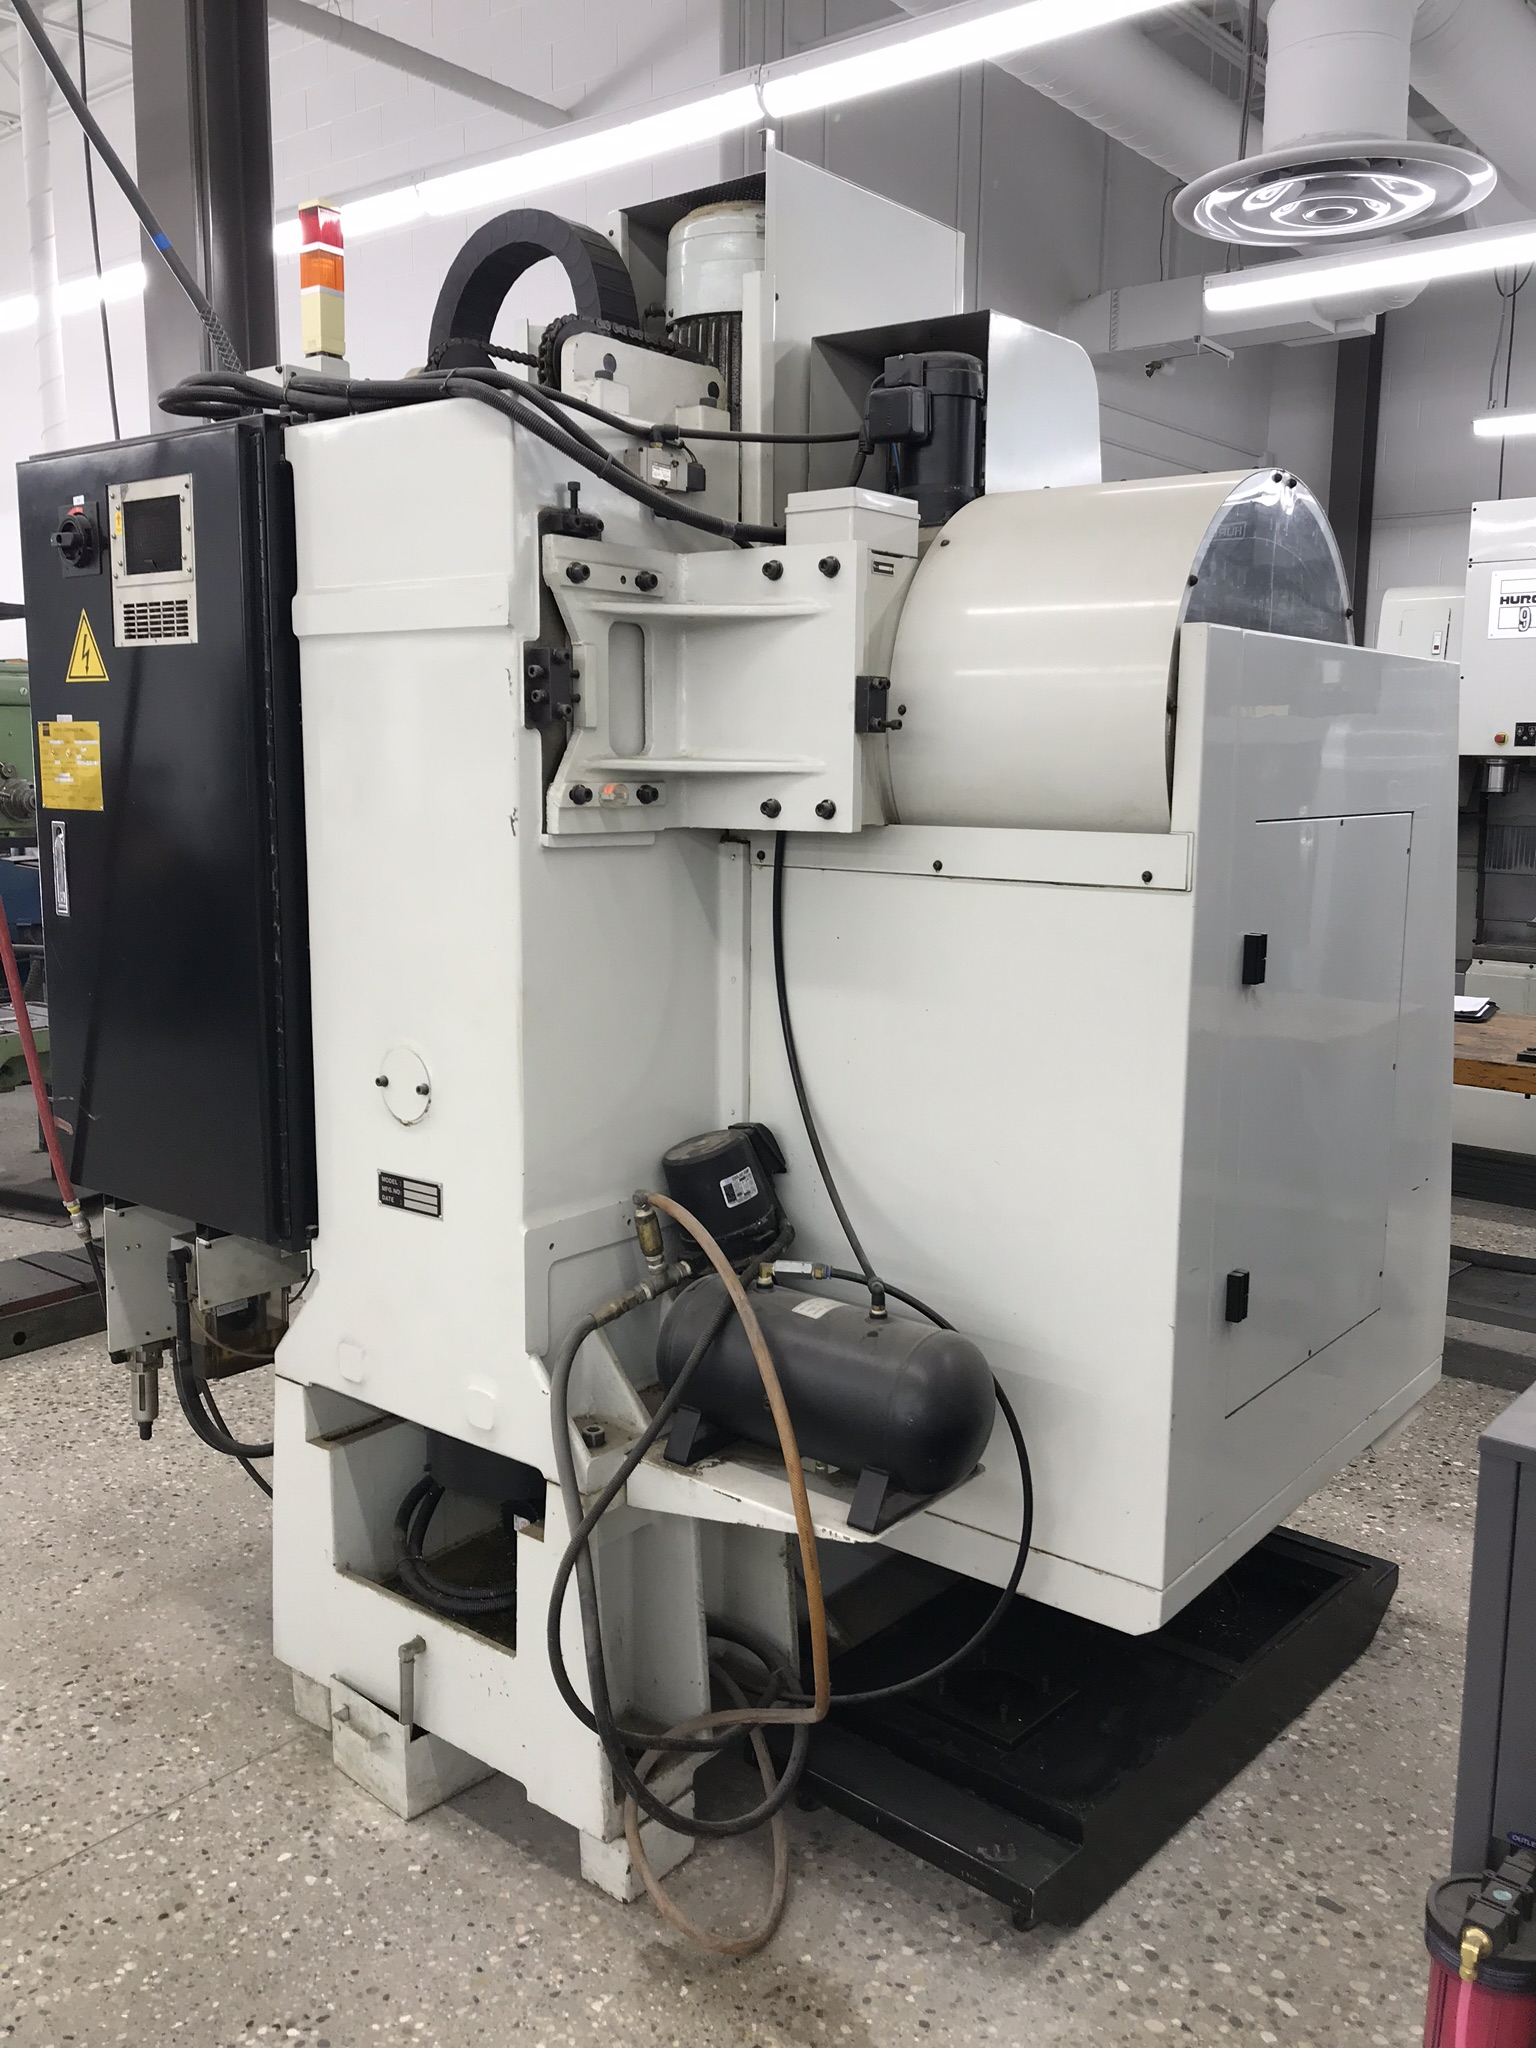 Hurco VM-1 CNC Vertical Machining Center, Spindle Recently Replaced, Approx 6,800 Hours, Max Control - Image 5 of 5